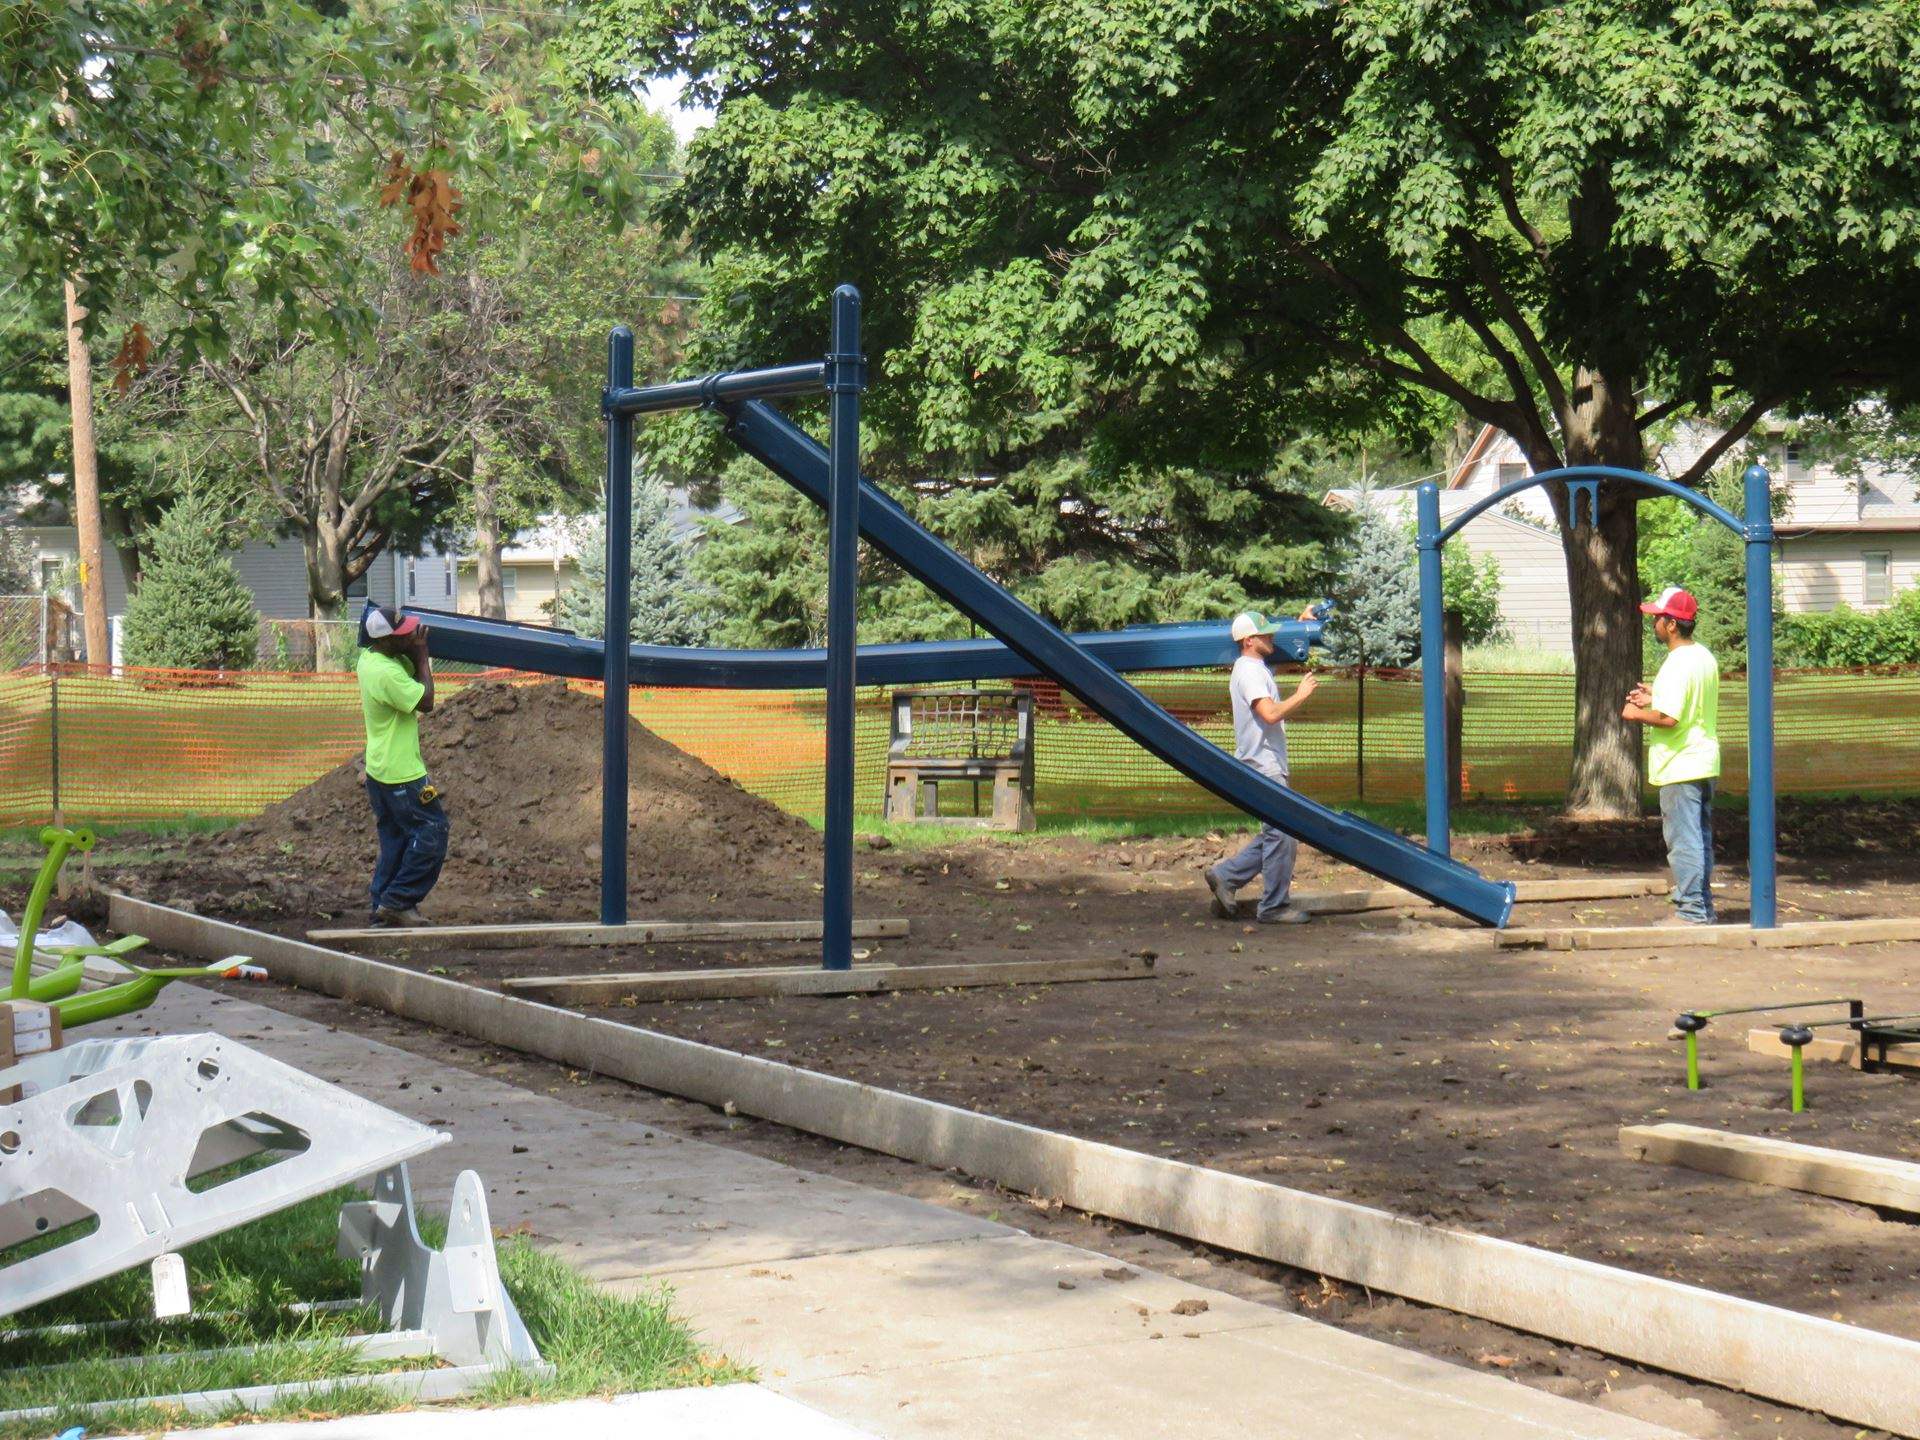 workers setting up play equipment at site